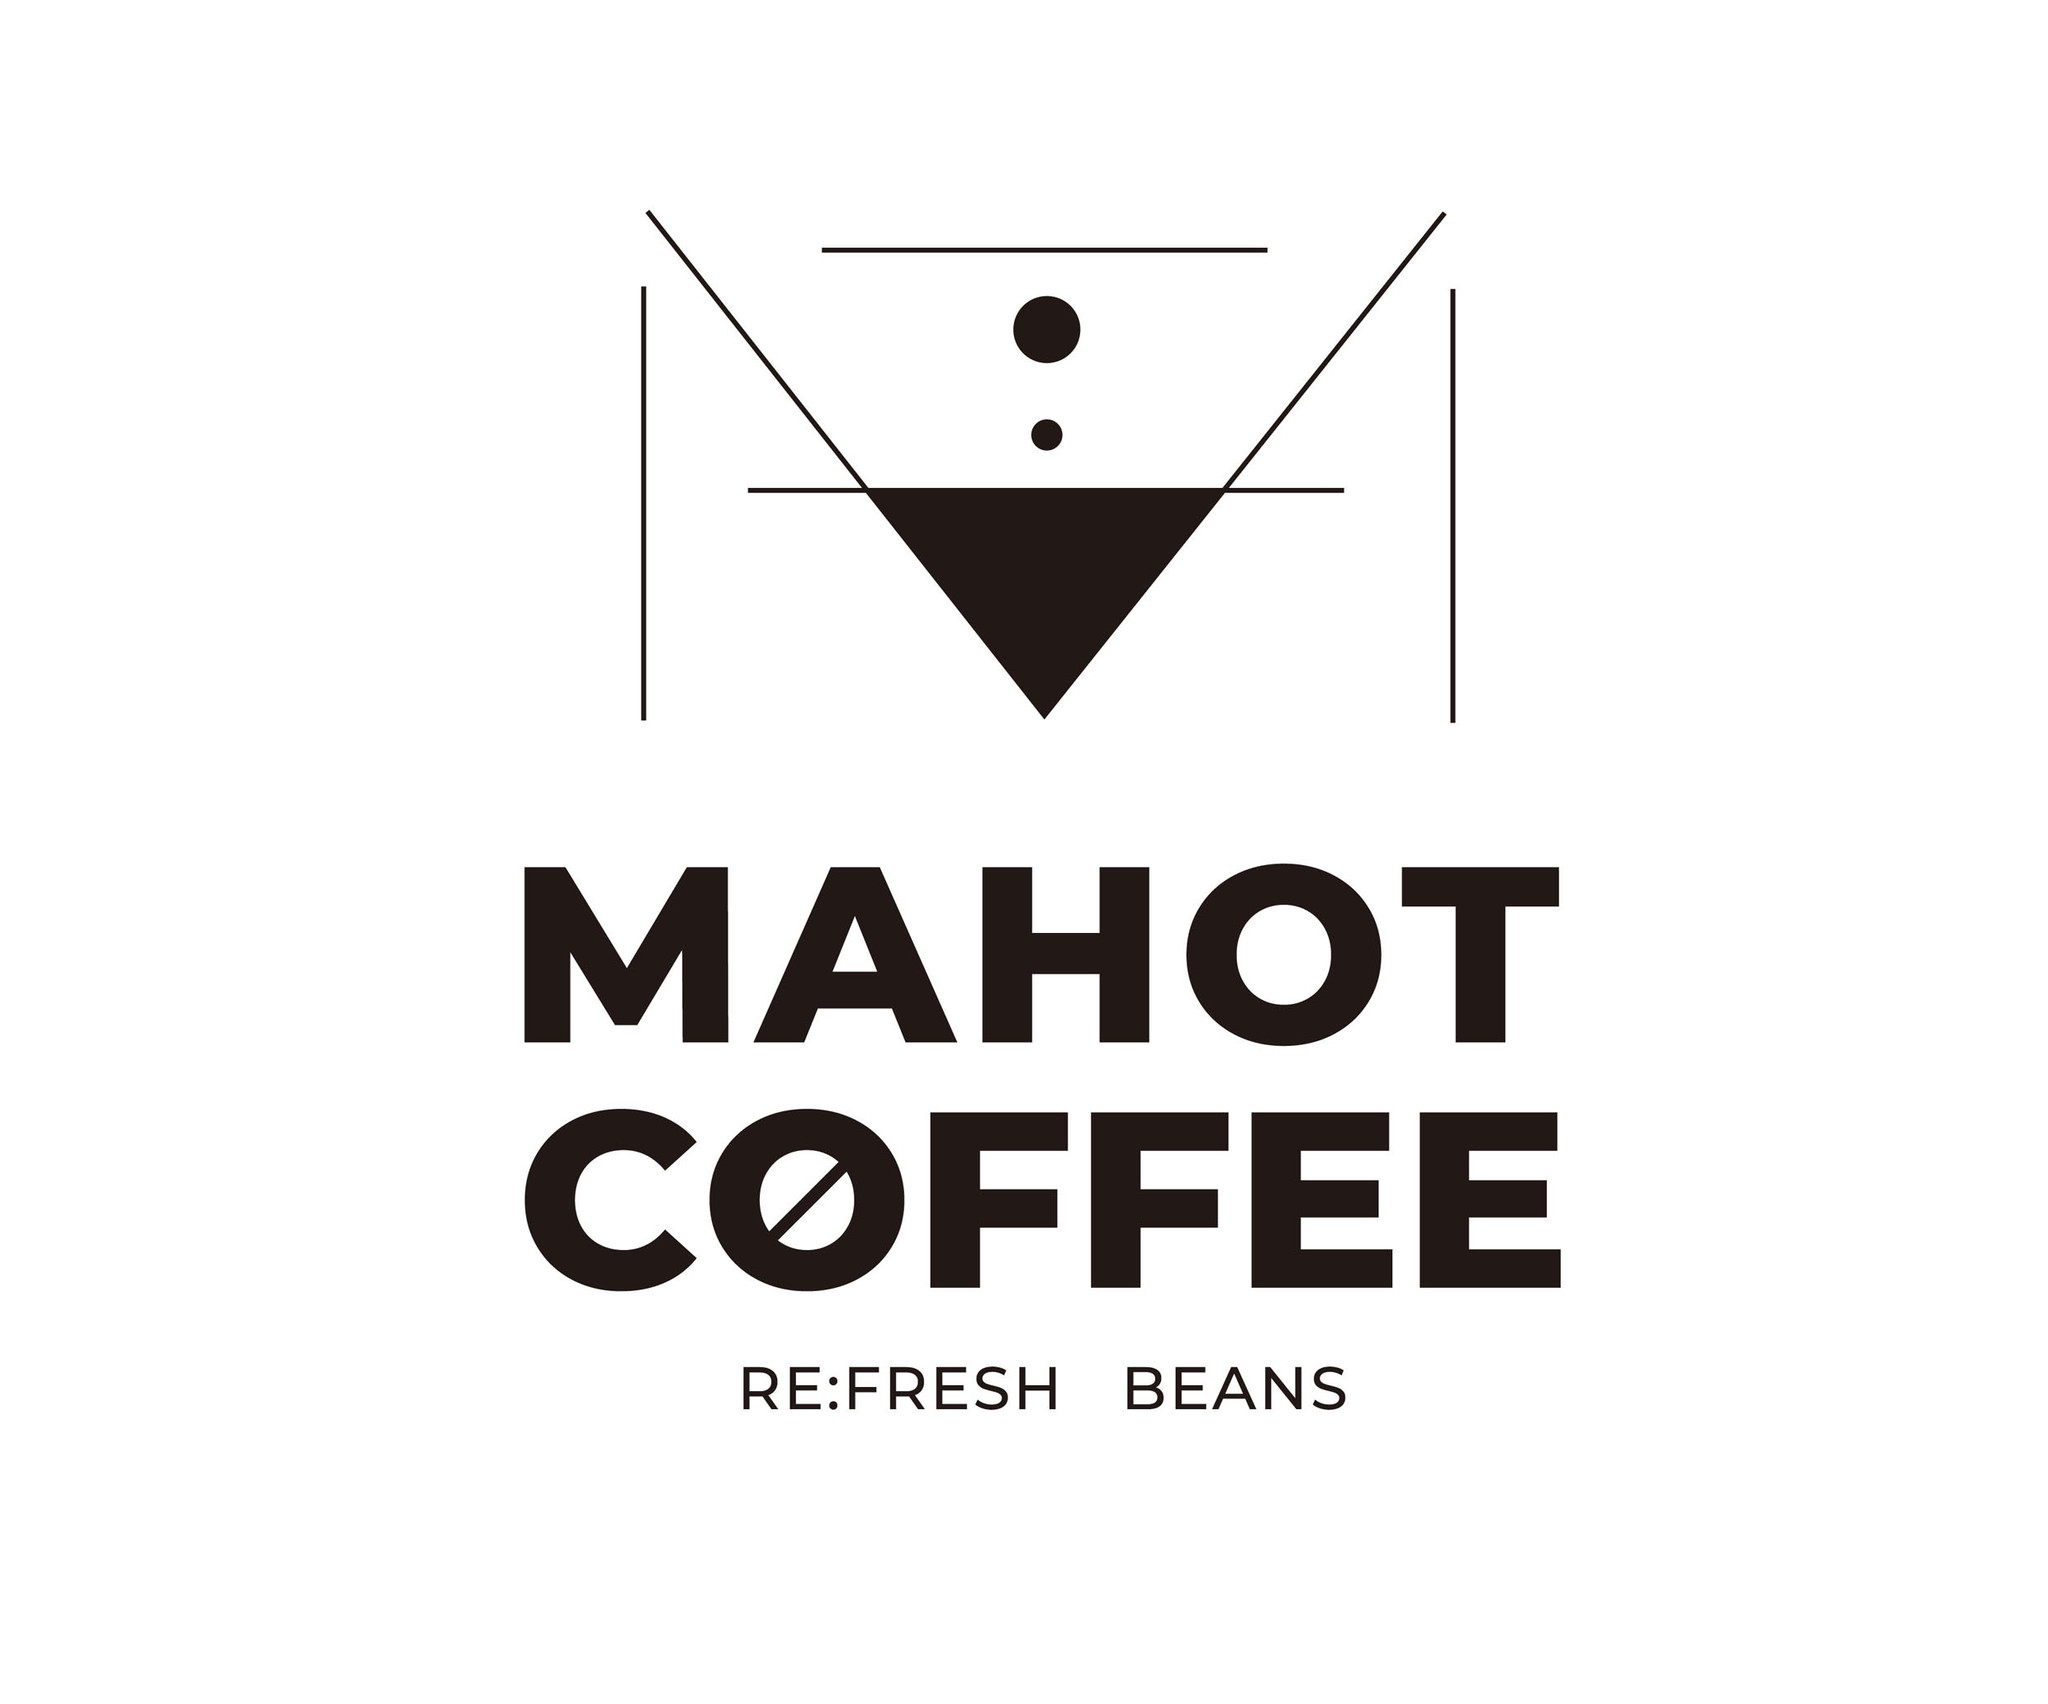 MAHOT COFFEE